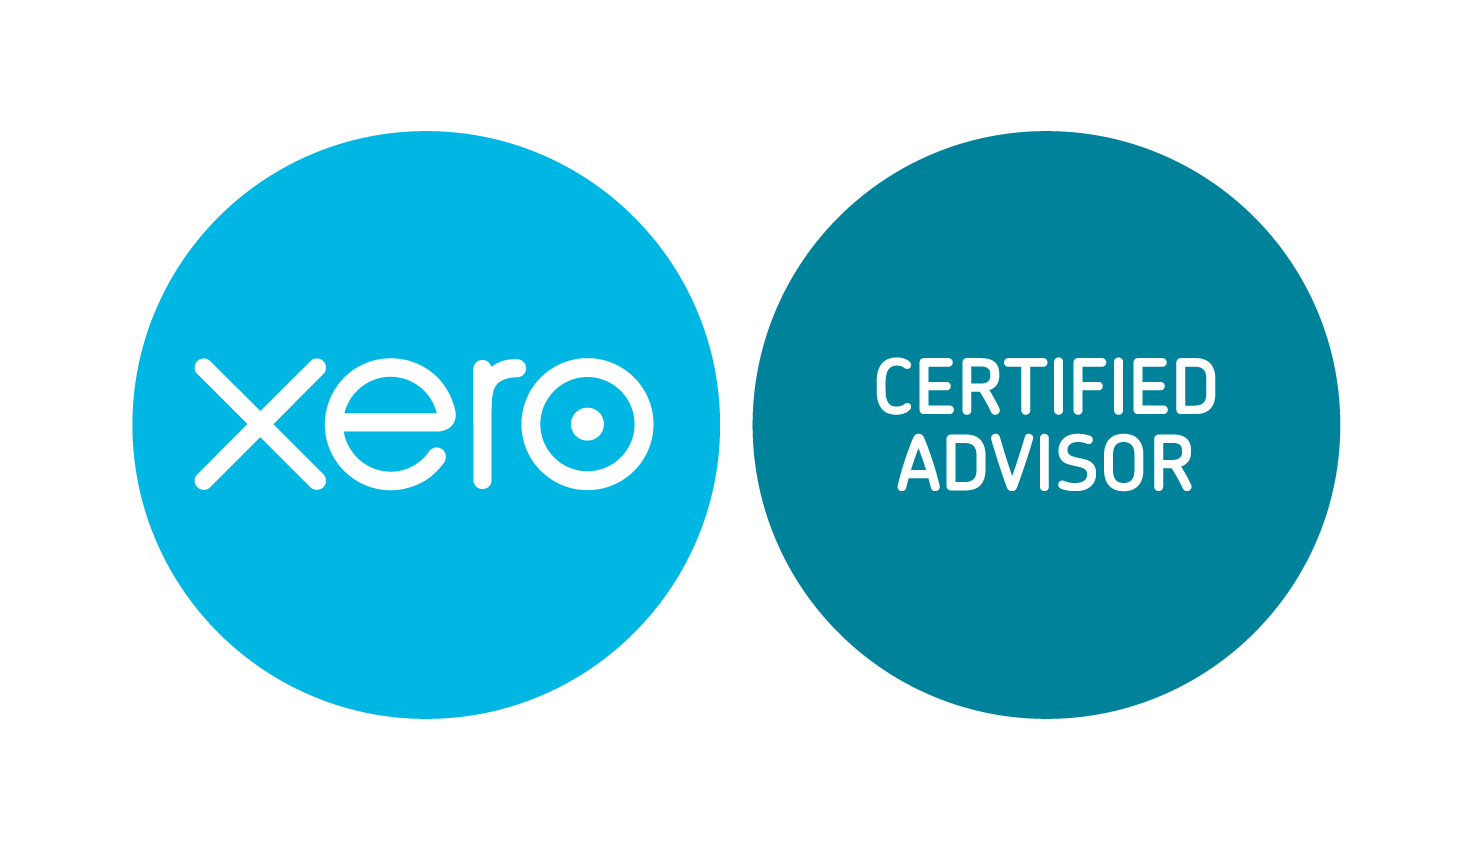 GP CPA c1748c f7b3fef450e24a00b4052fd16cf2318a 2 » Certified Public Accountant using Xero, Avalara and Gusto to make your payroll and taxes easier, serving in North Carolina and South Carolina